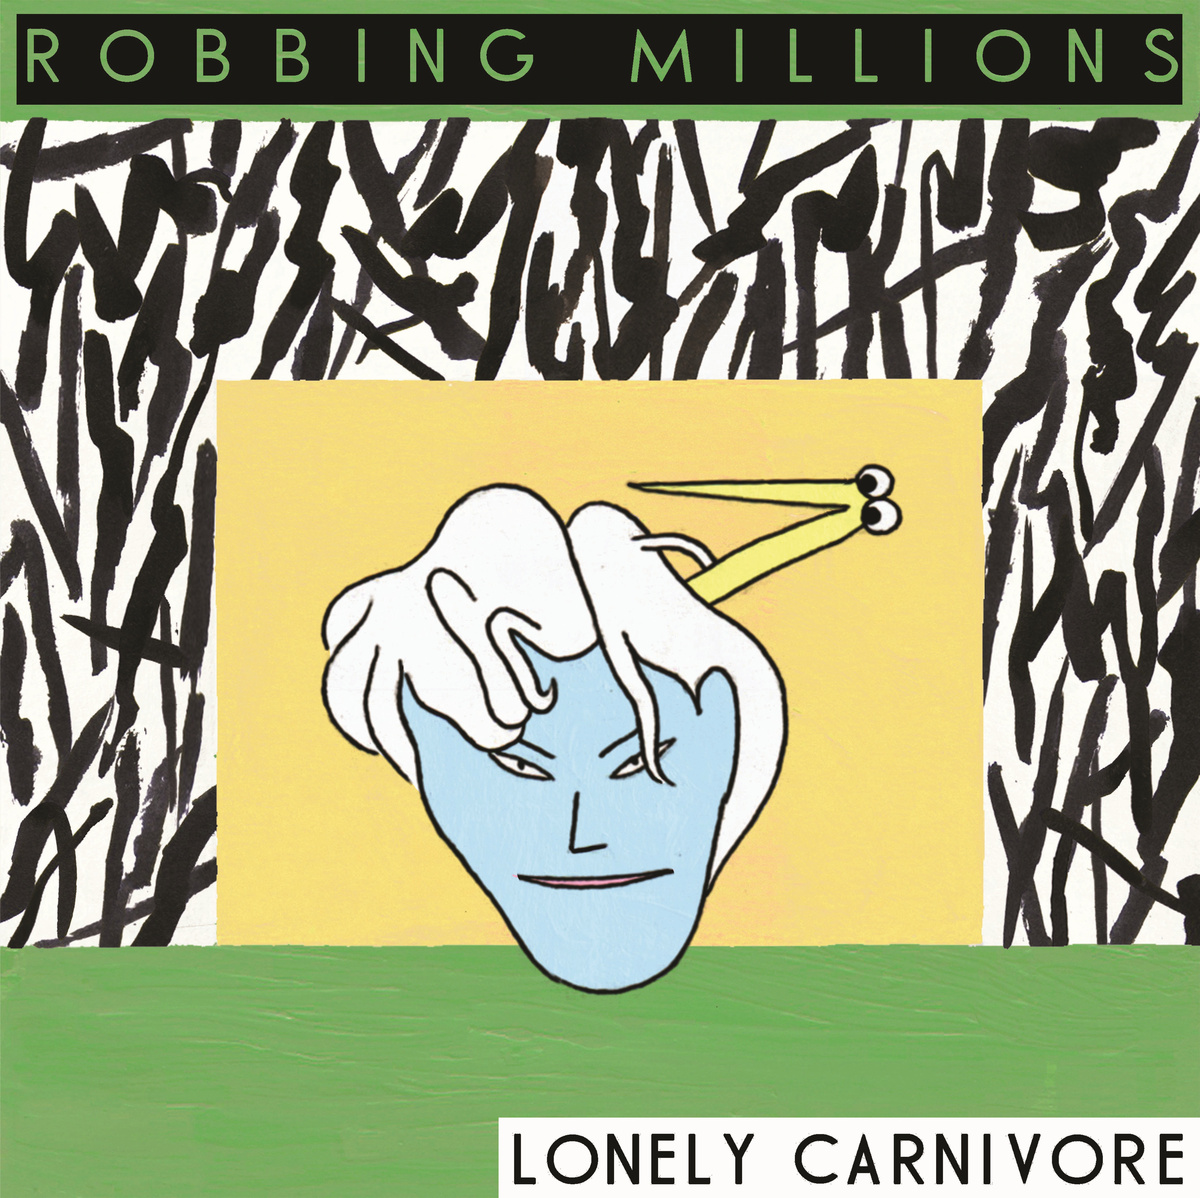 Lonely Carnivore